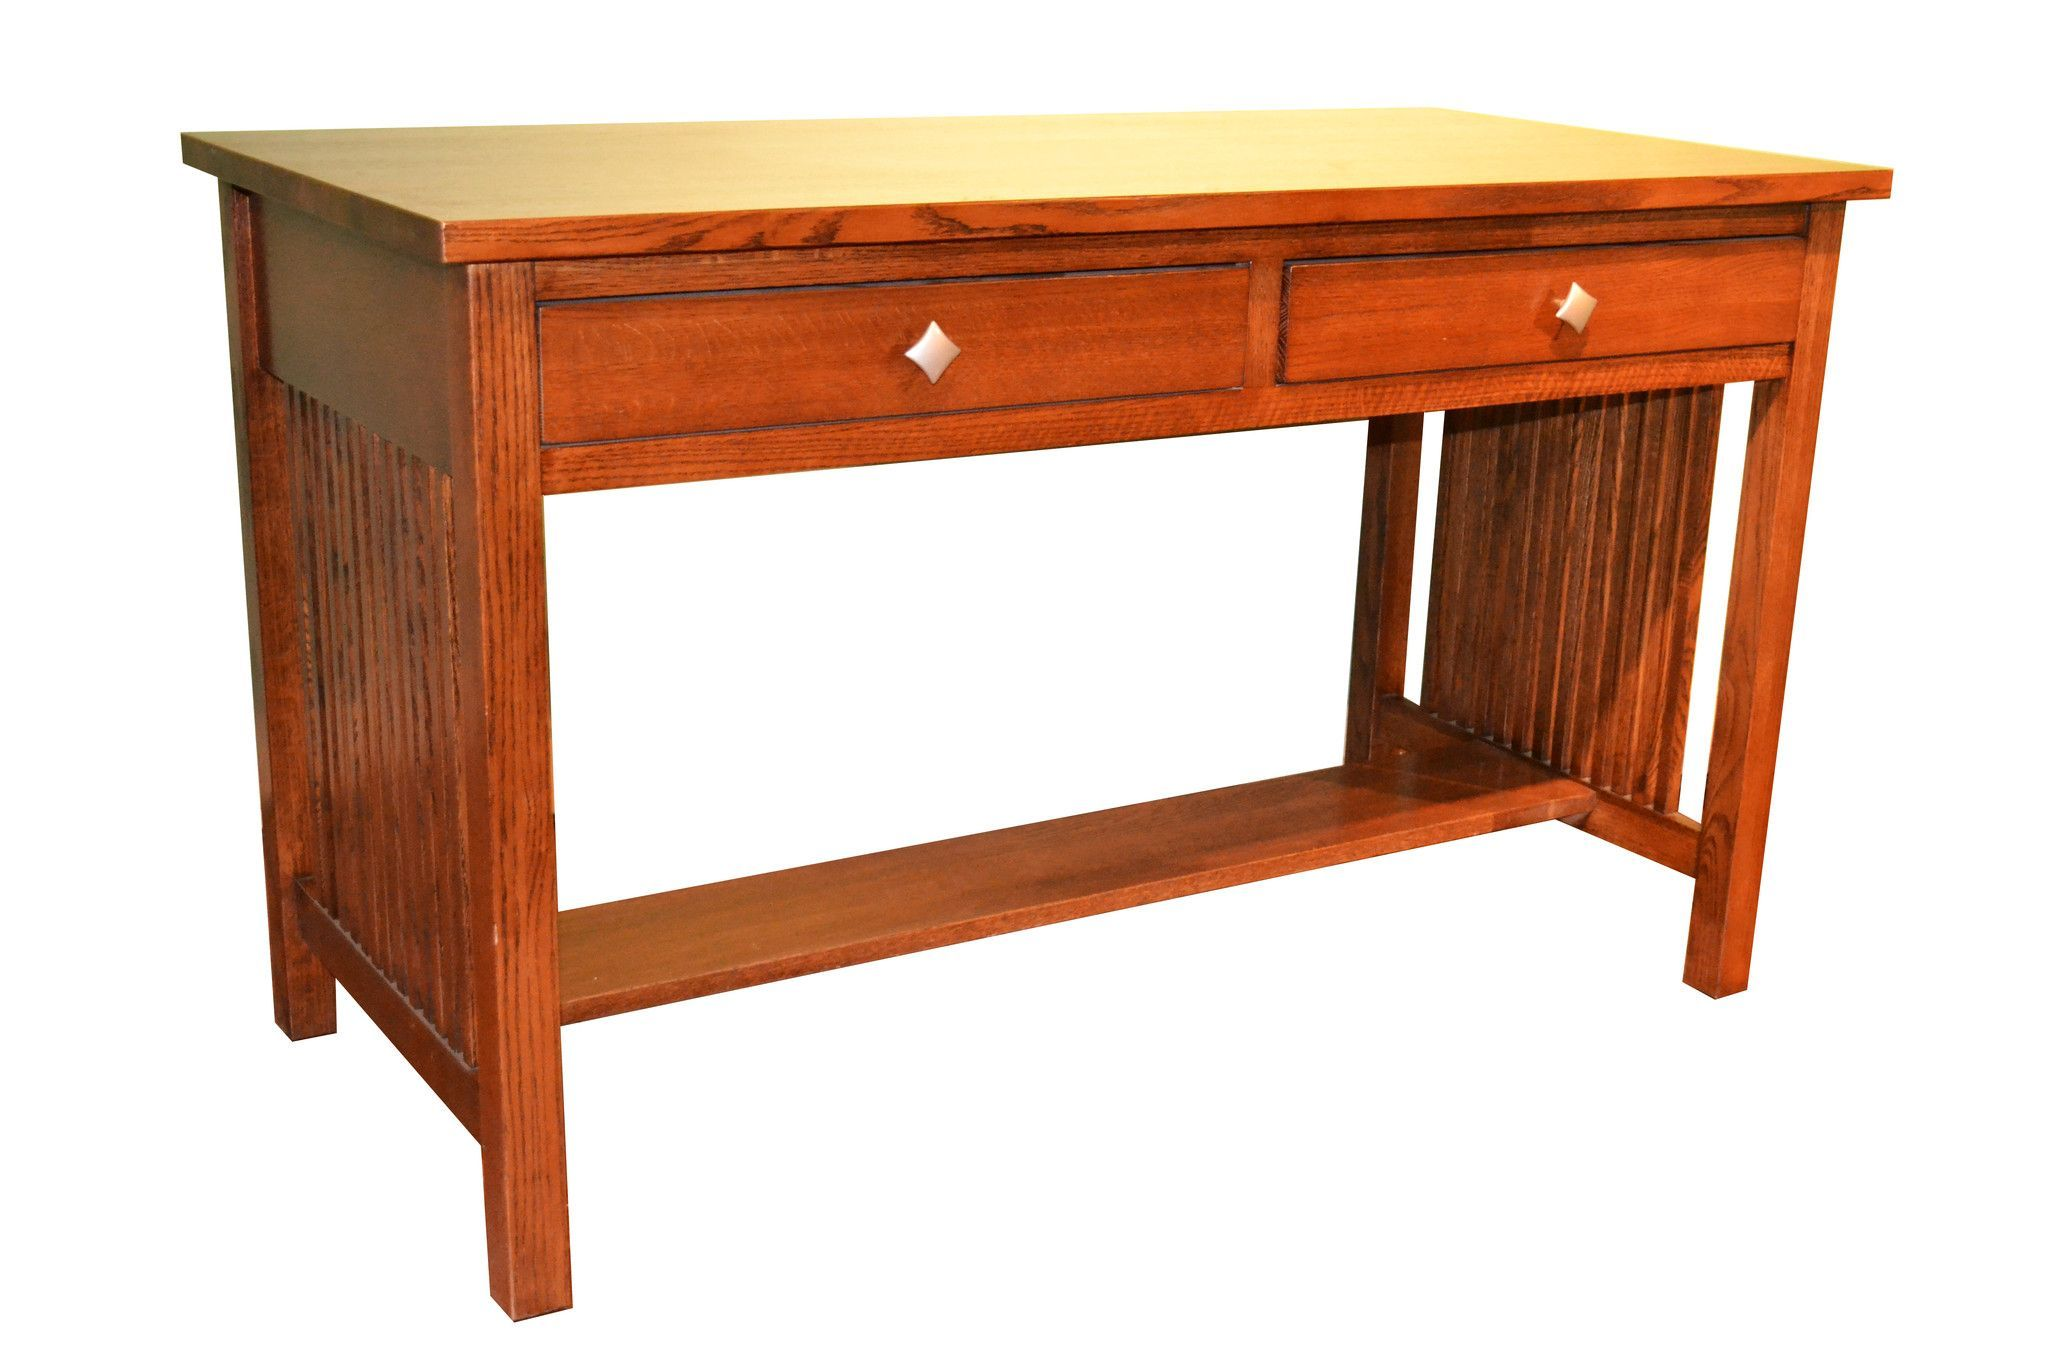 Mission Oak Library Table With Spindles Style Desk Made Of Solid